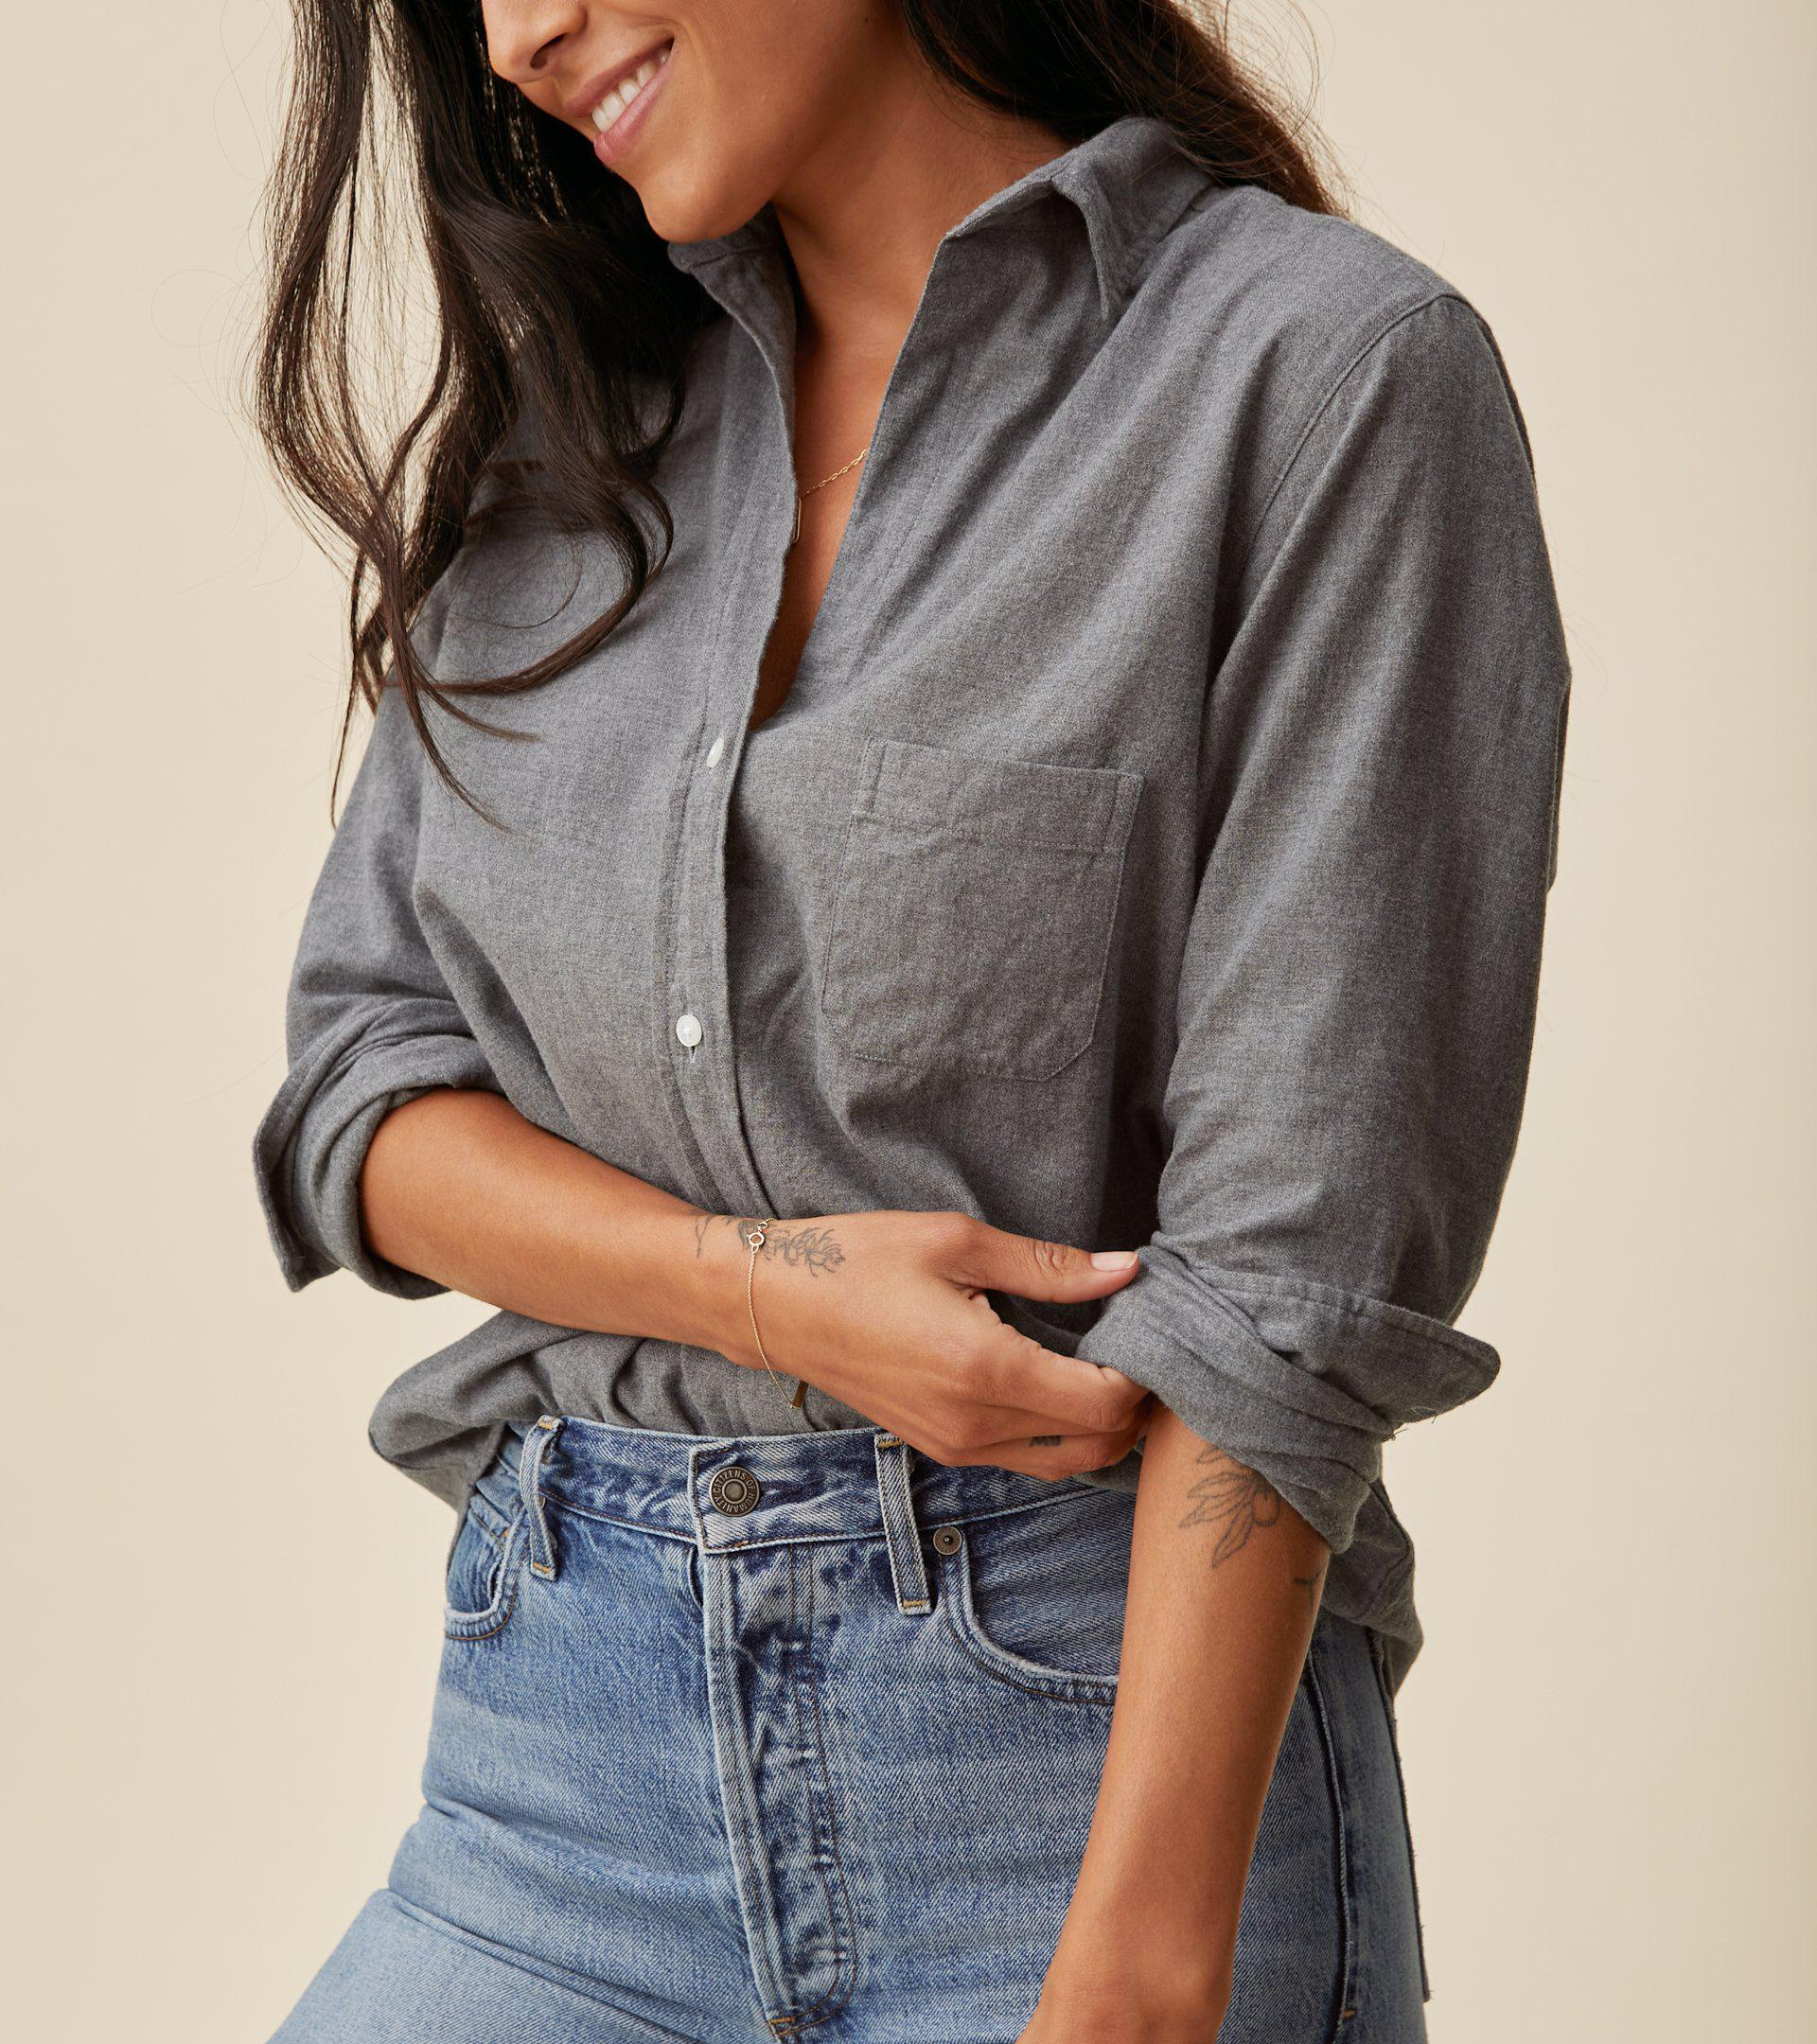 The Hero Button-Up Shirt Gray Melange, Feathered Flannel